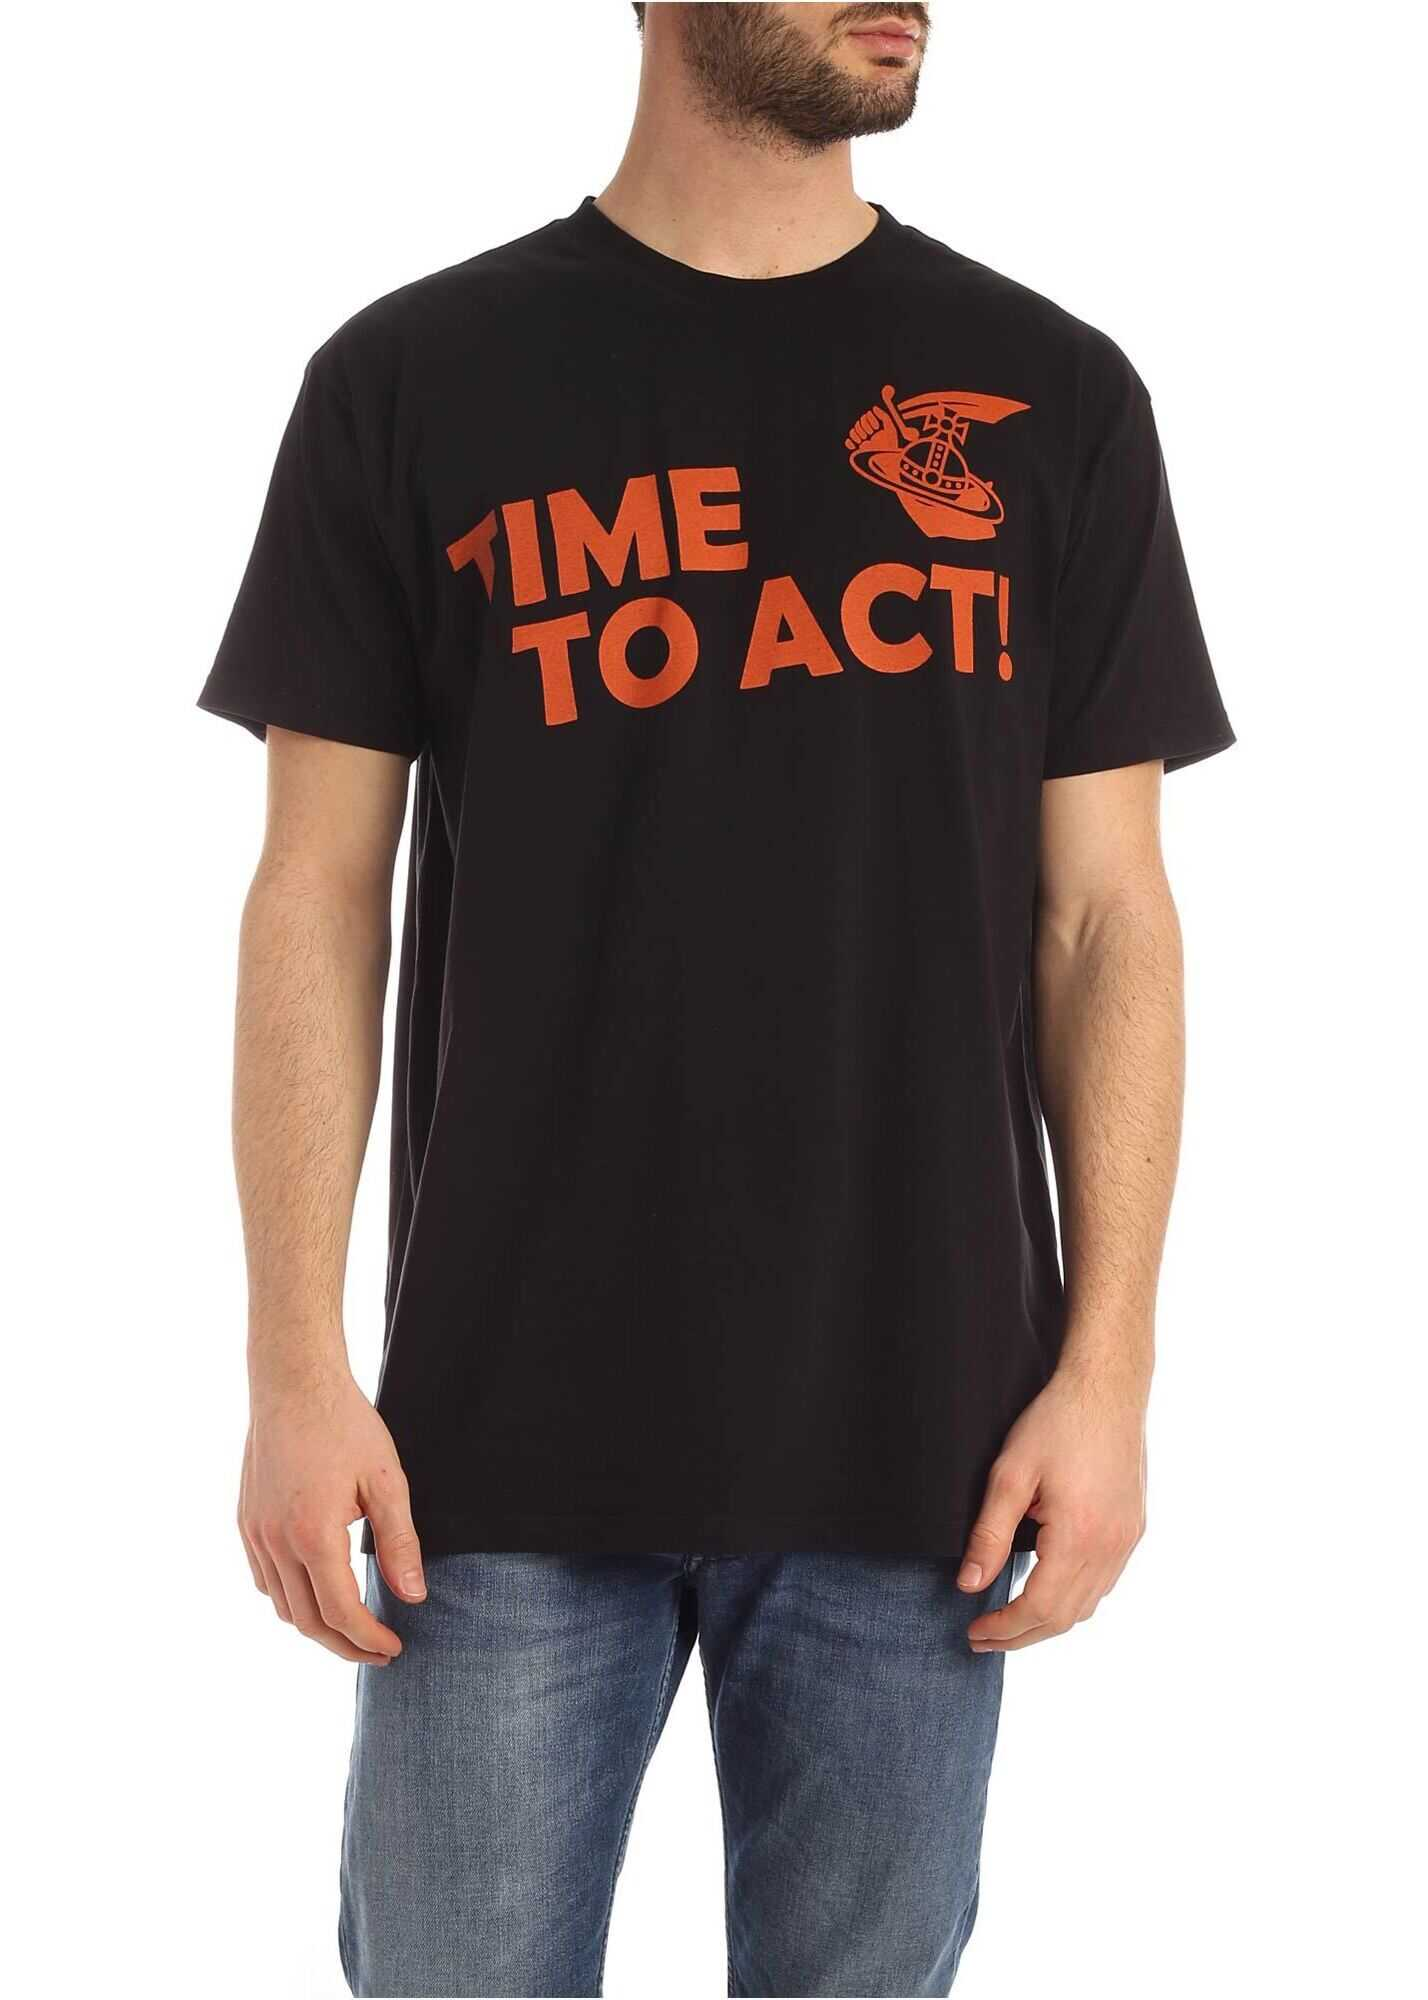 Vivienne Westwood Anglomania New Boxy Time To Act T-Shirt In Black Black